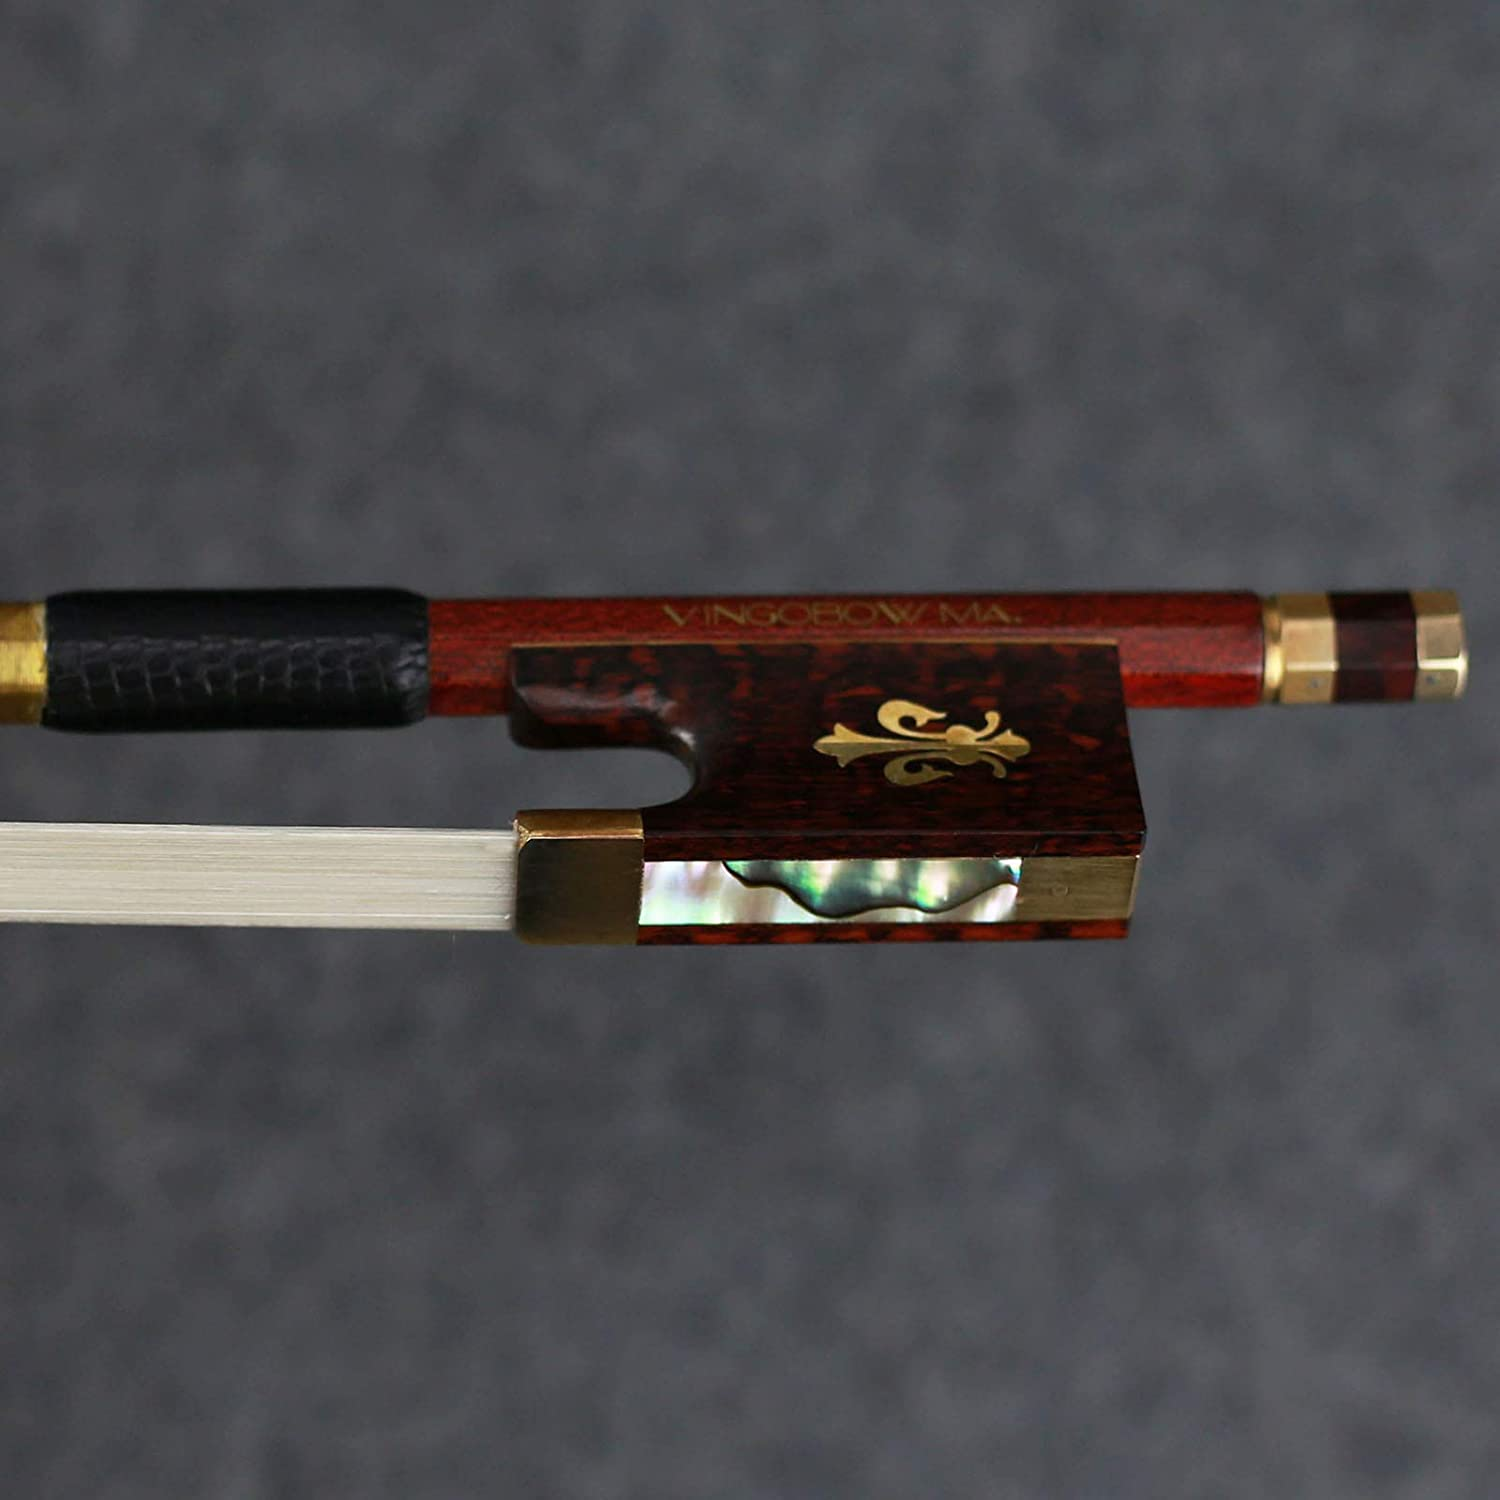 Carbon Fiber Core Hybrid Peranmbuco Skin Violin Bow 4//4 Size VINGOBOW 127V Master Level Fleur-de-lys Snakewood Frog 4 4 Full Straight Premium Natural Horse Hair for Porfessional Player